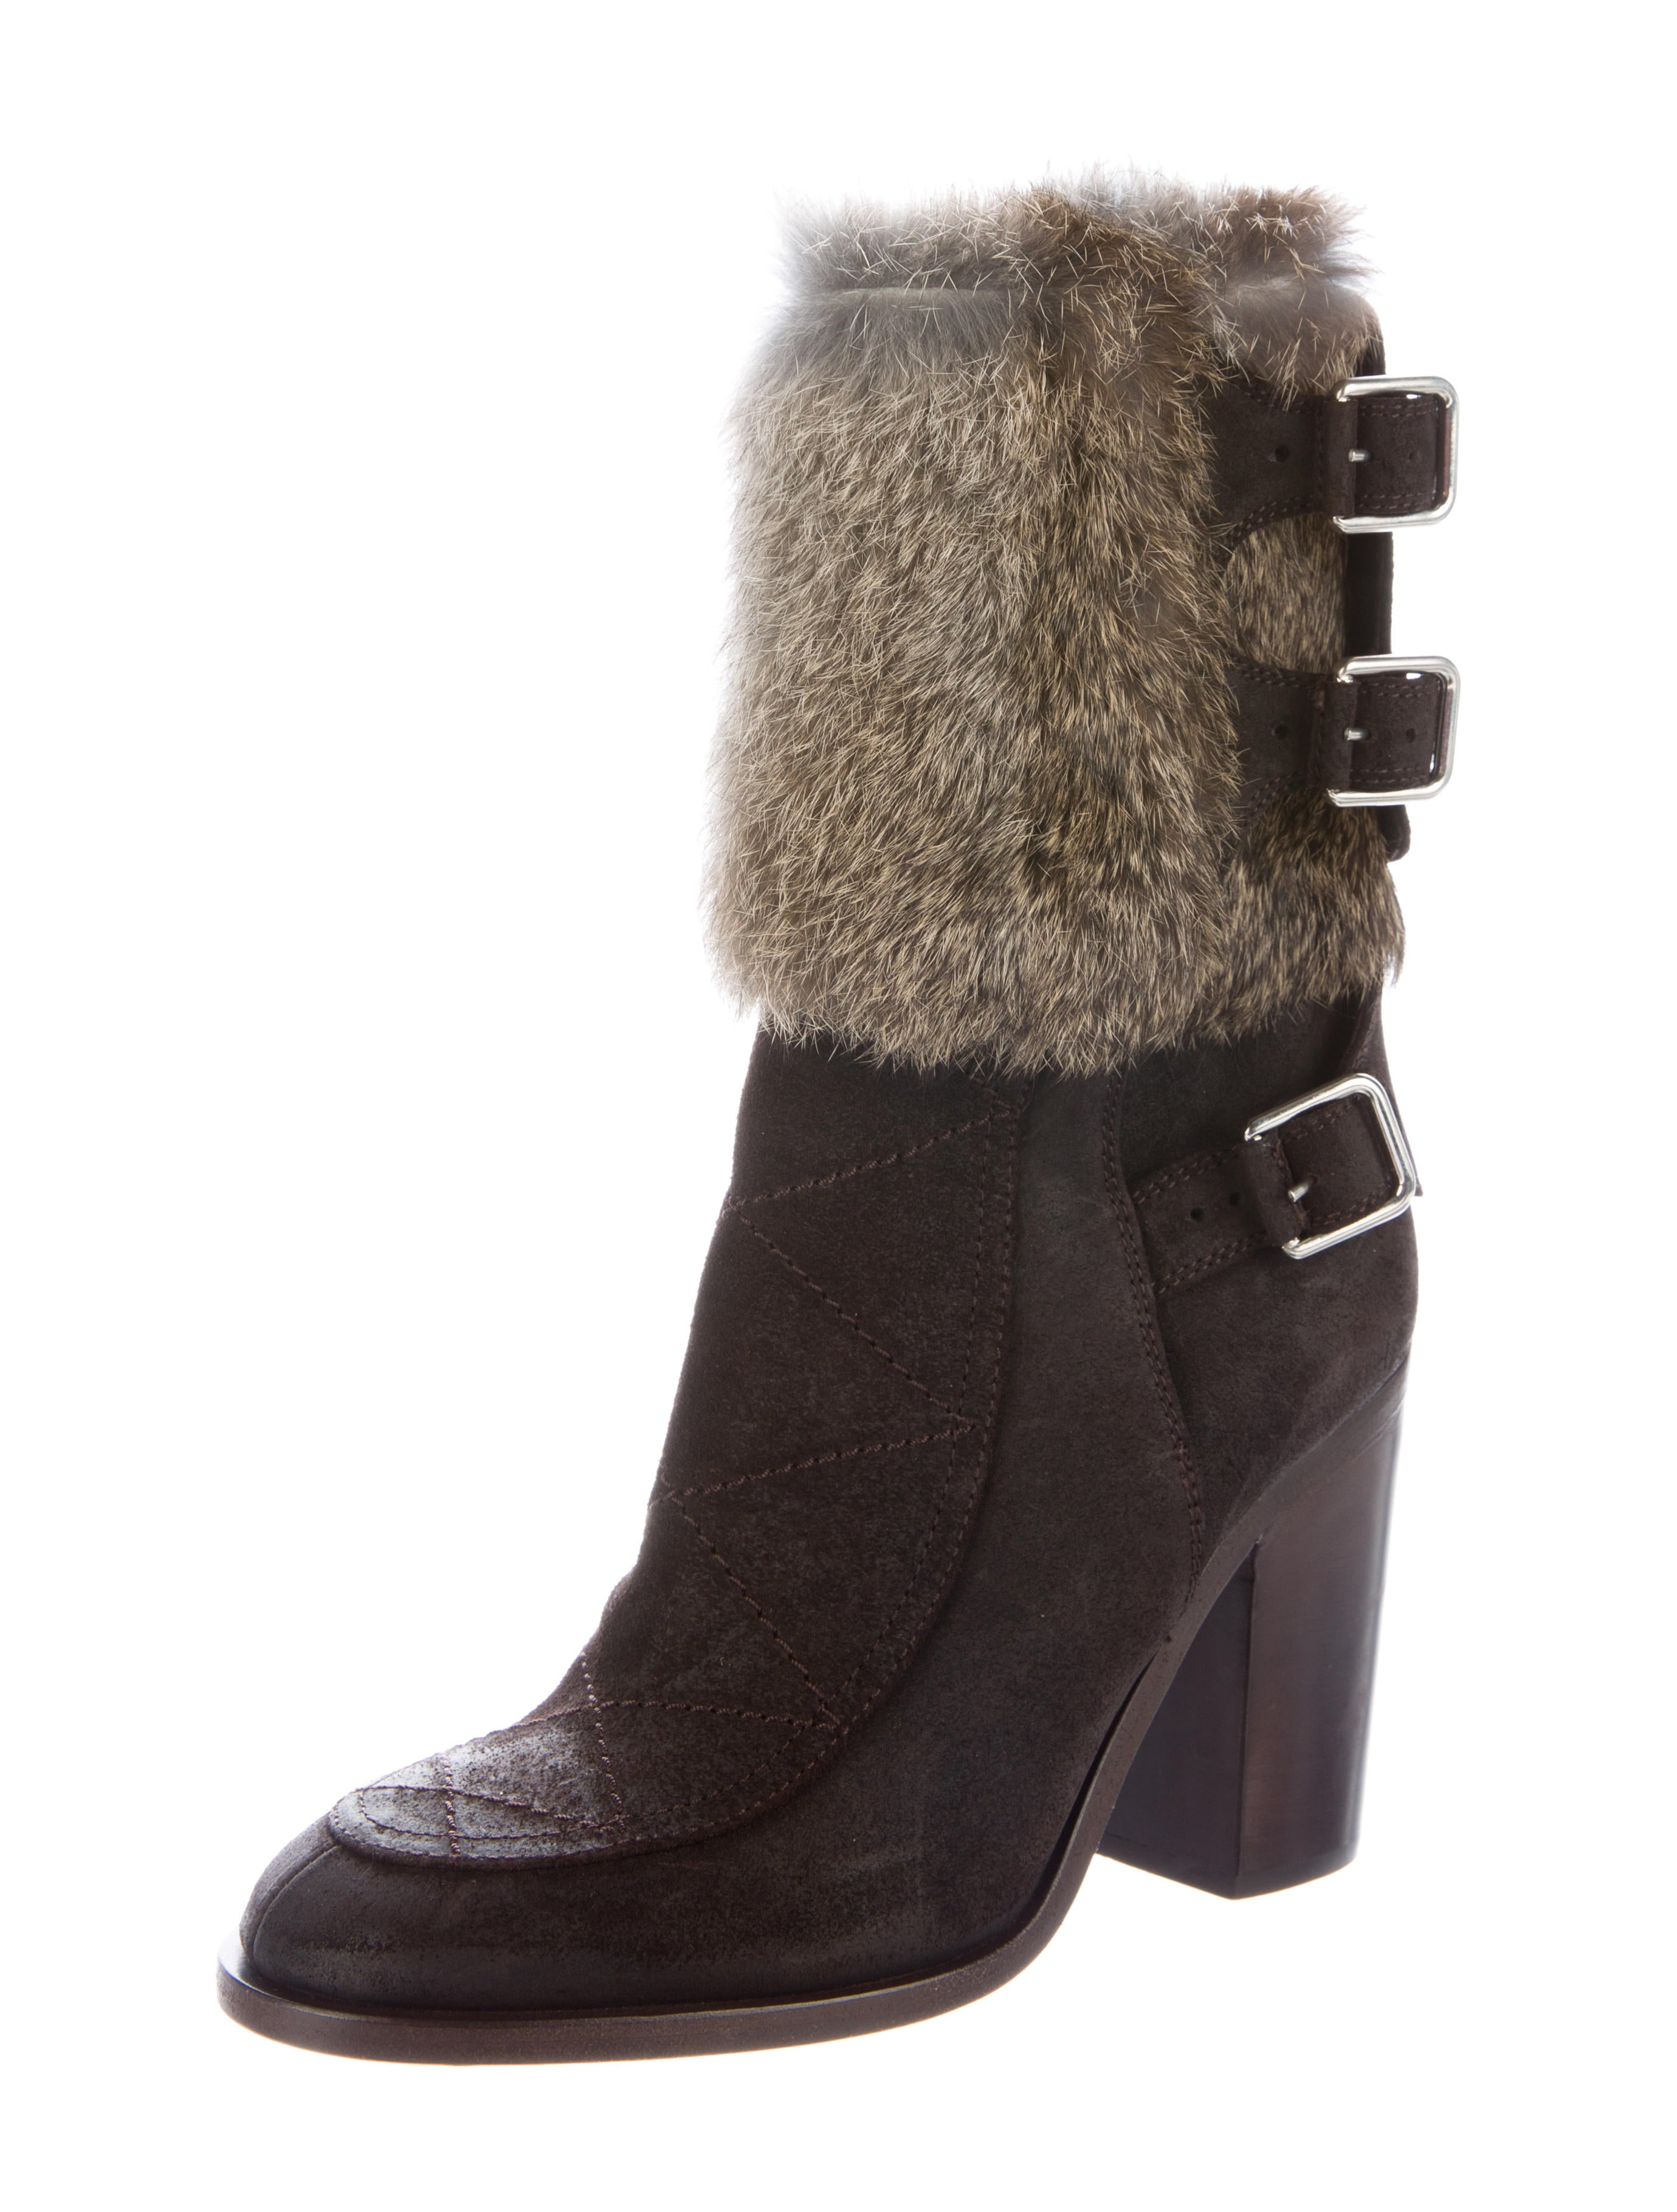 laurence dacade fur trimmed suede ankle boots shoes